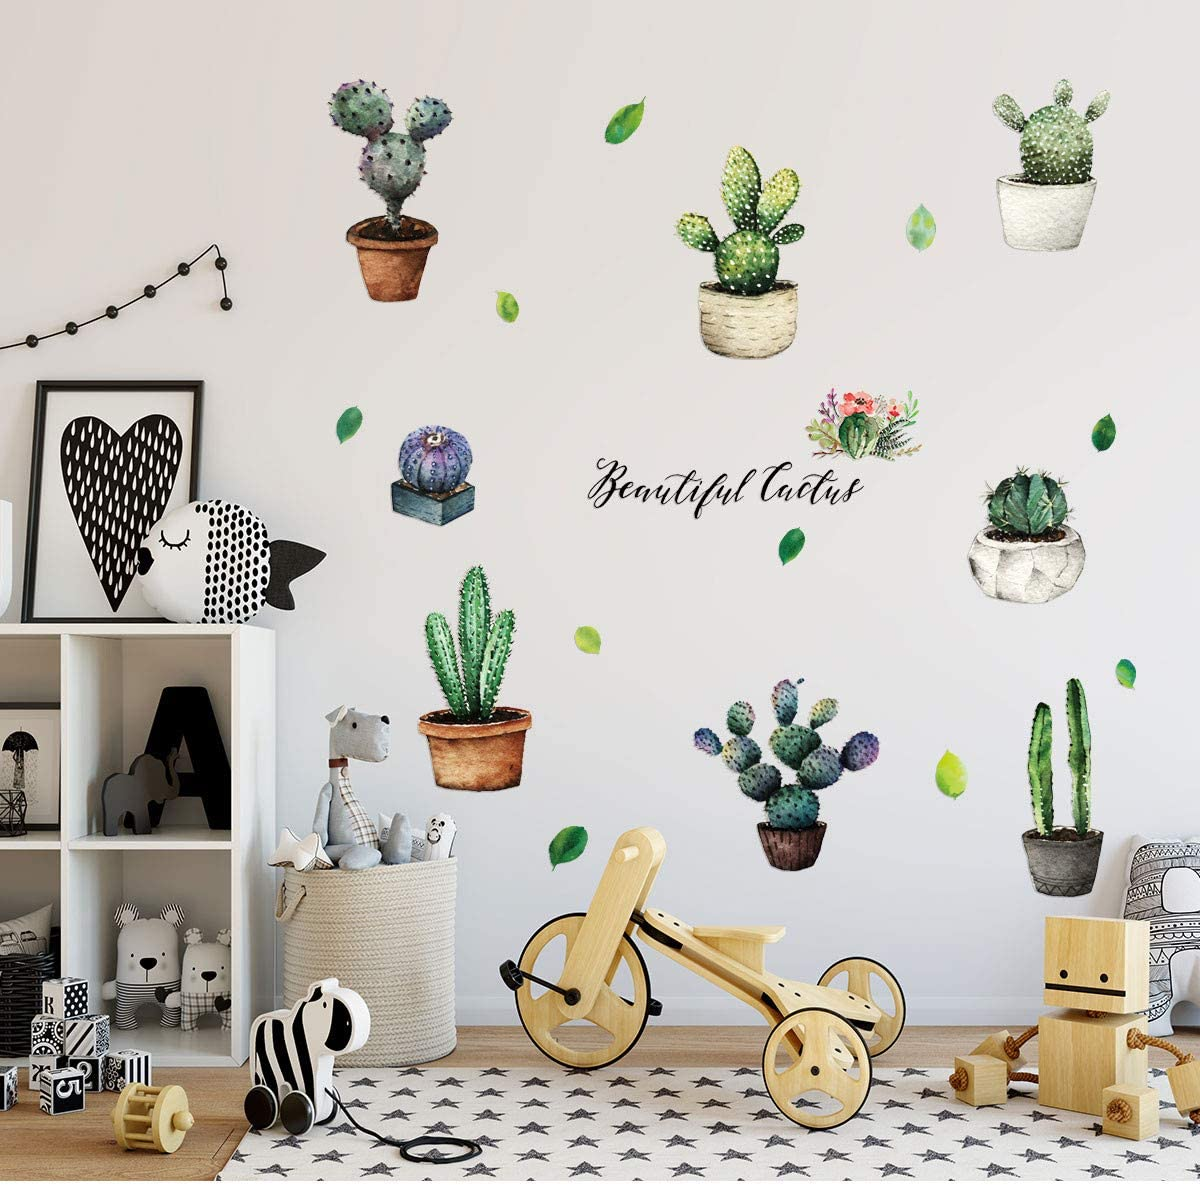 5% OFF RYGHEWE Wall Stickers for Living New life De Plants Pattern Room